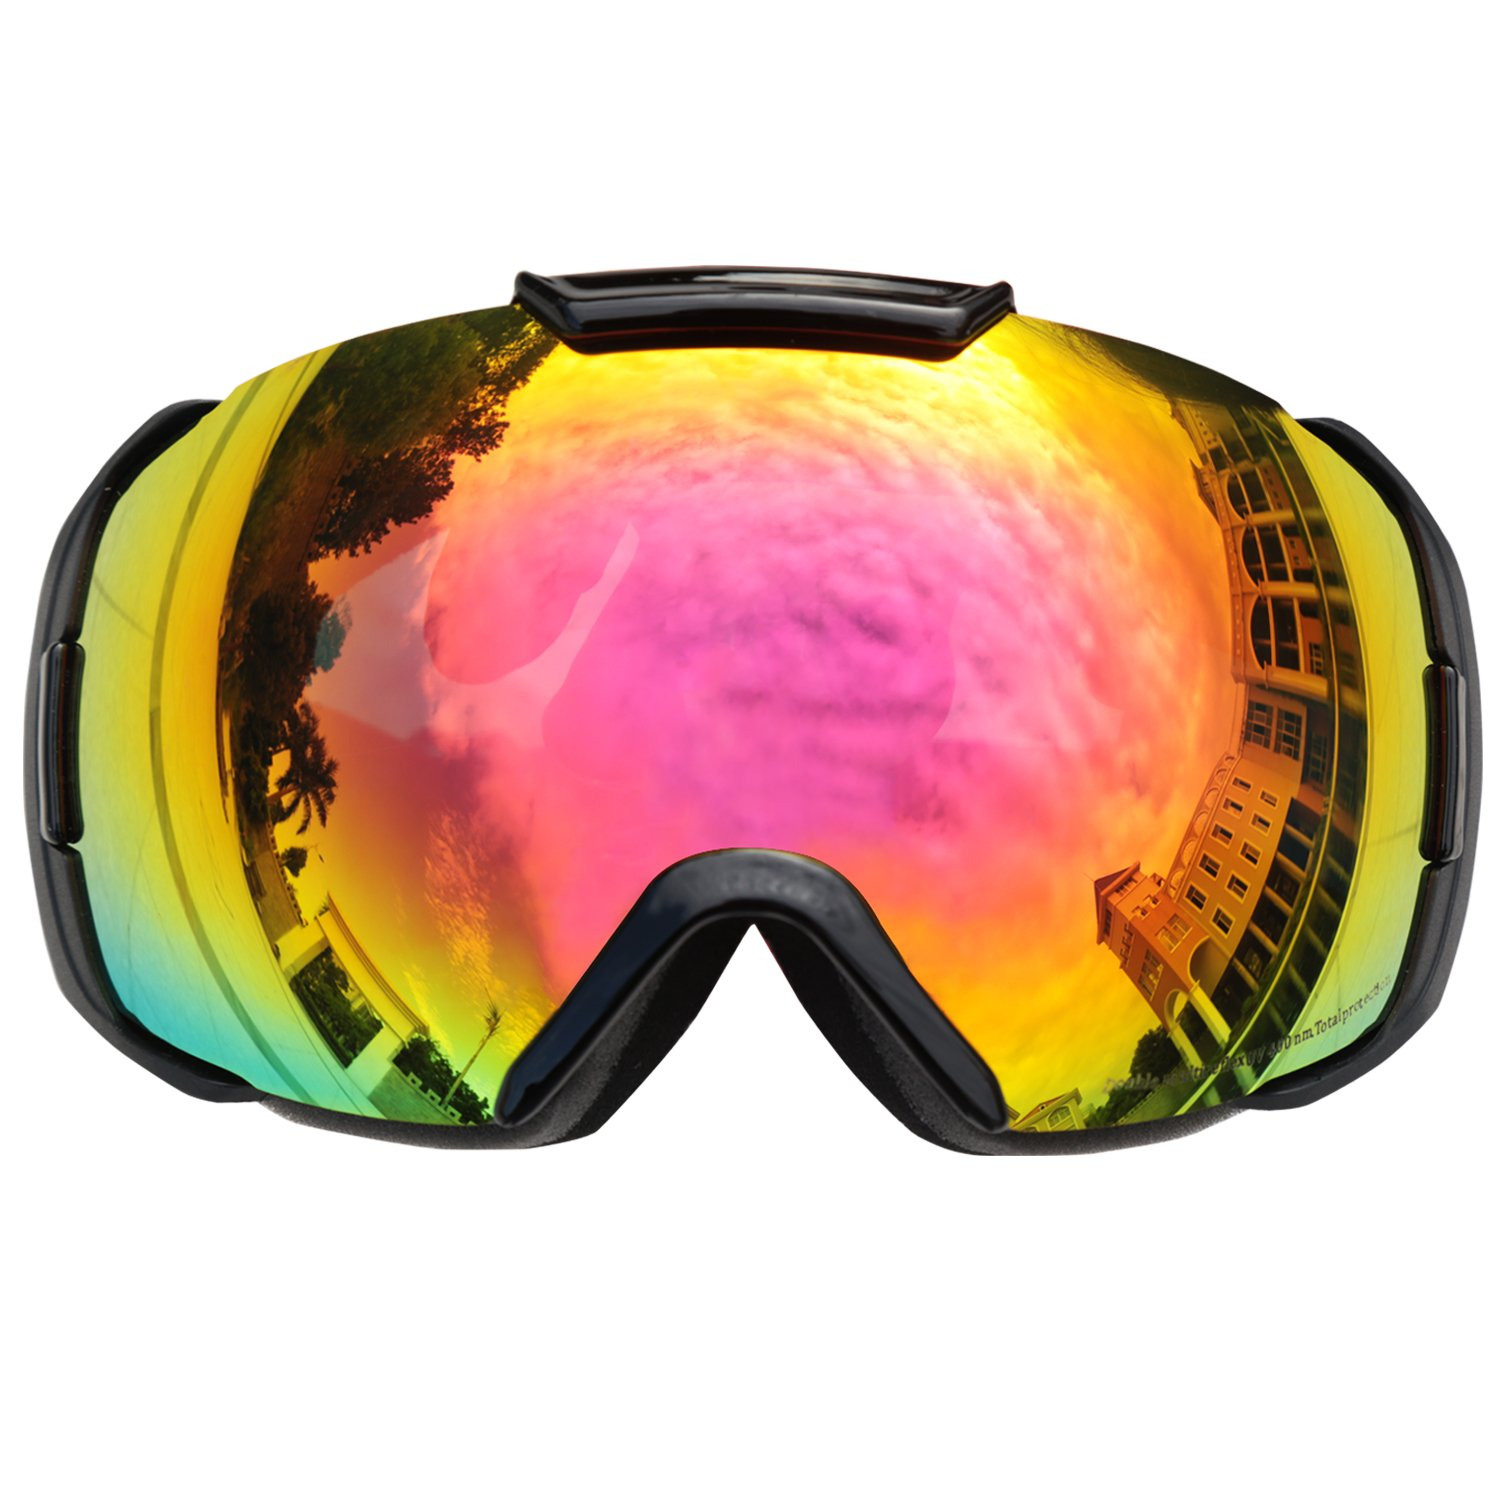 be nice ski goggles  Amazon.com : Premium OTG Ski Snowboard Goggles with REVO Lens Anti ...